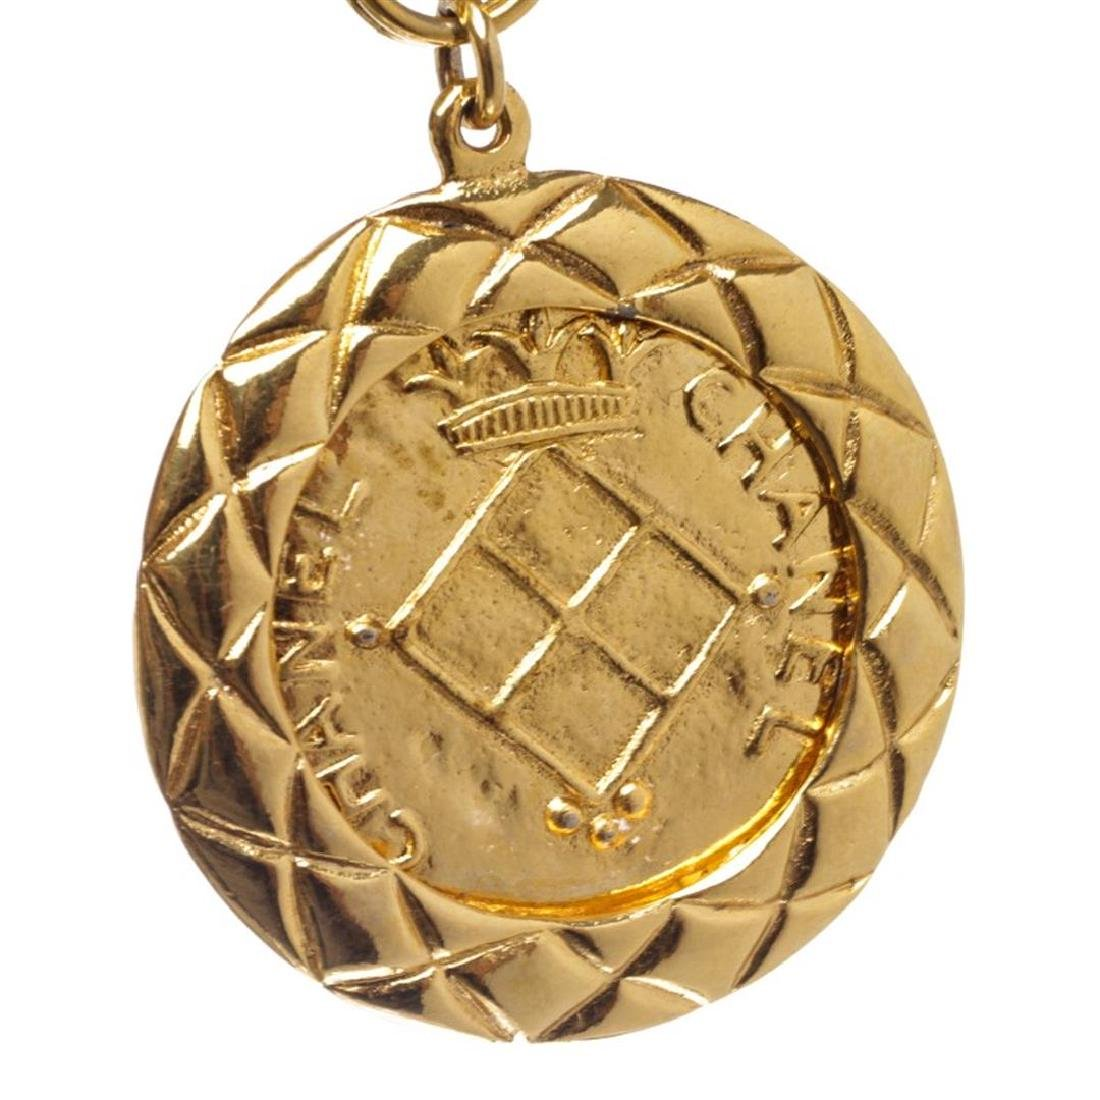 Chanel Gold Chain Link Medallion Long Necklace - 4